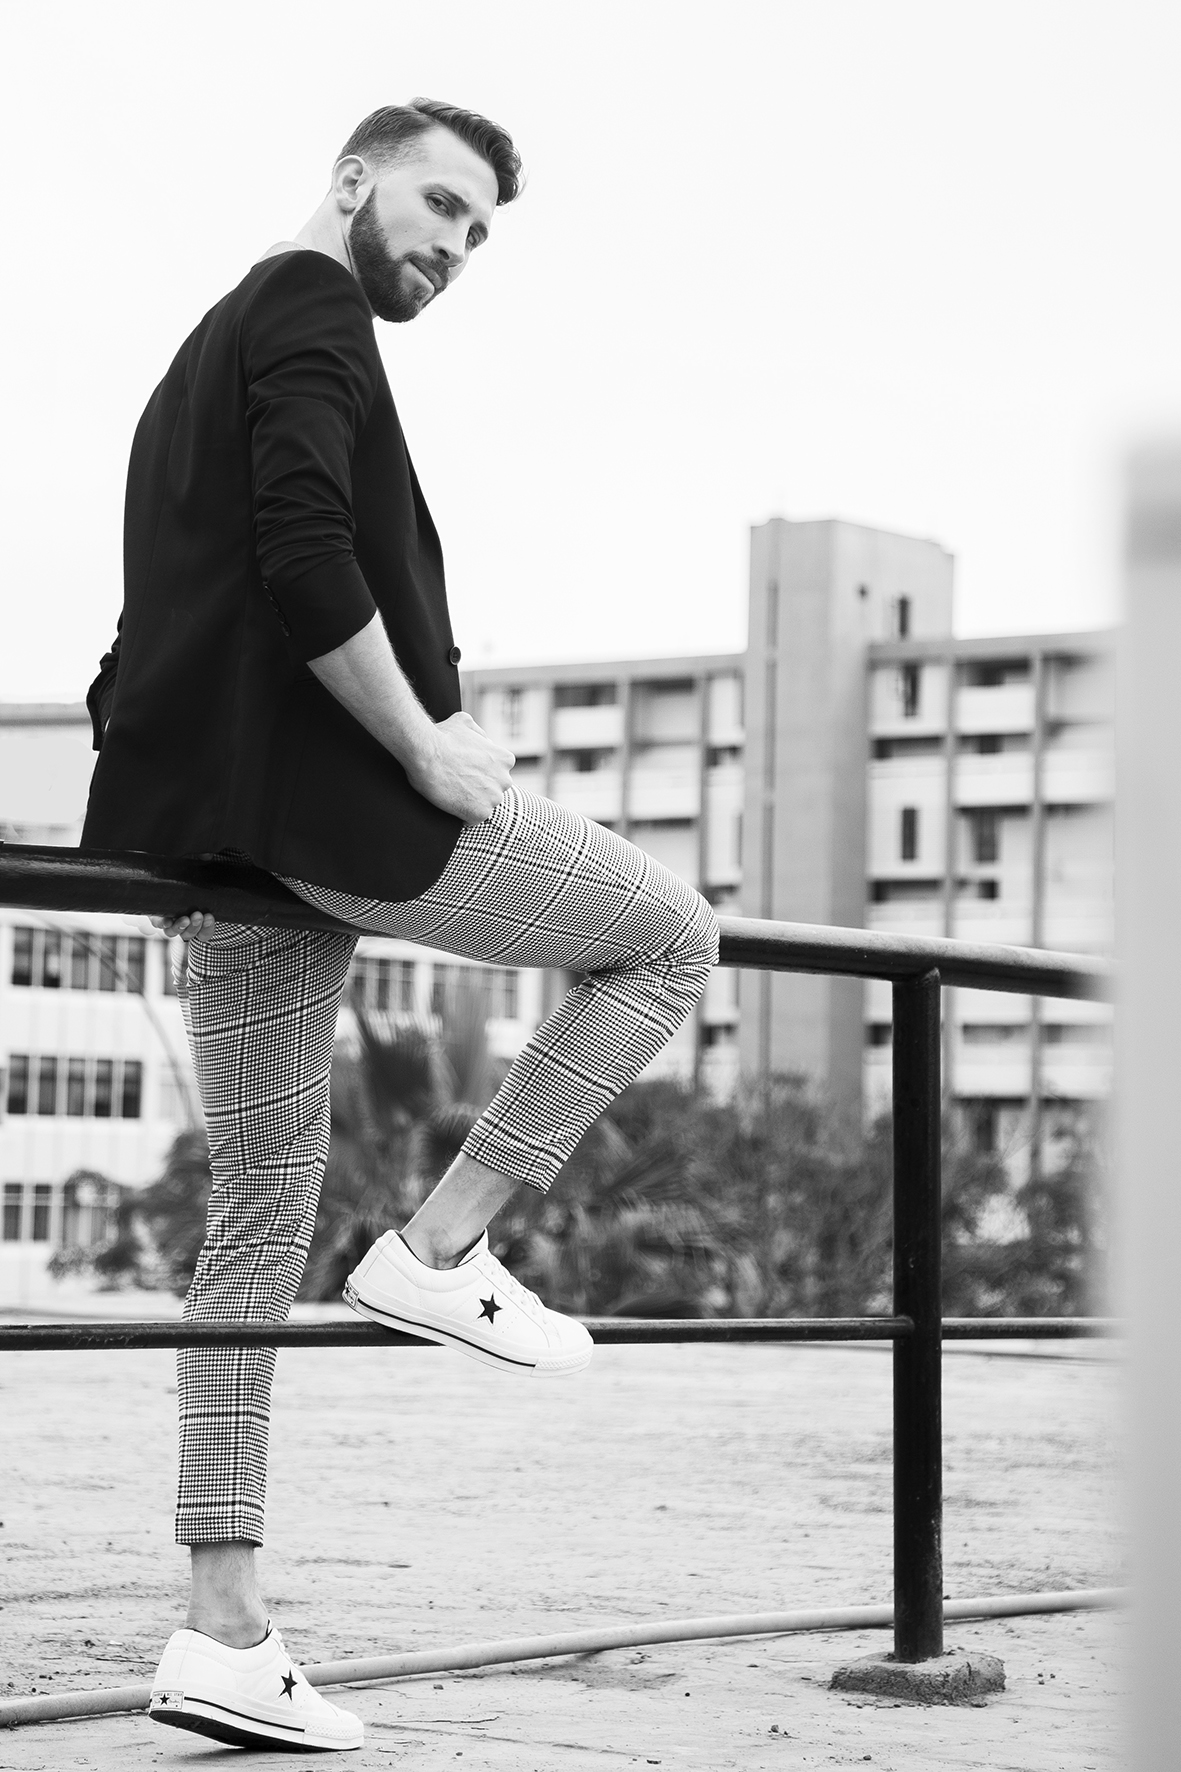 Christian Kelle code Blogger instagramer influencer peruvian peruano model modelo latino conver all star one suede leather sneakers streetstyle menswear hombre - 011.JPG